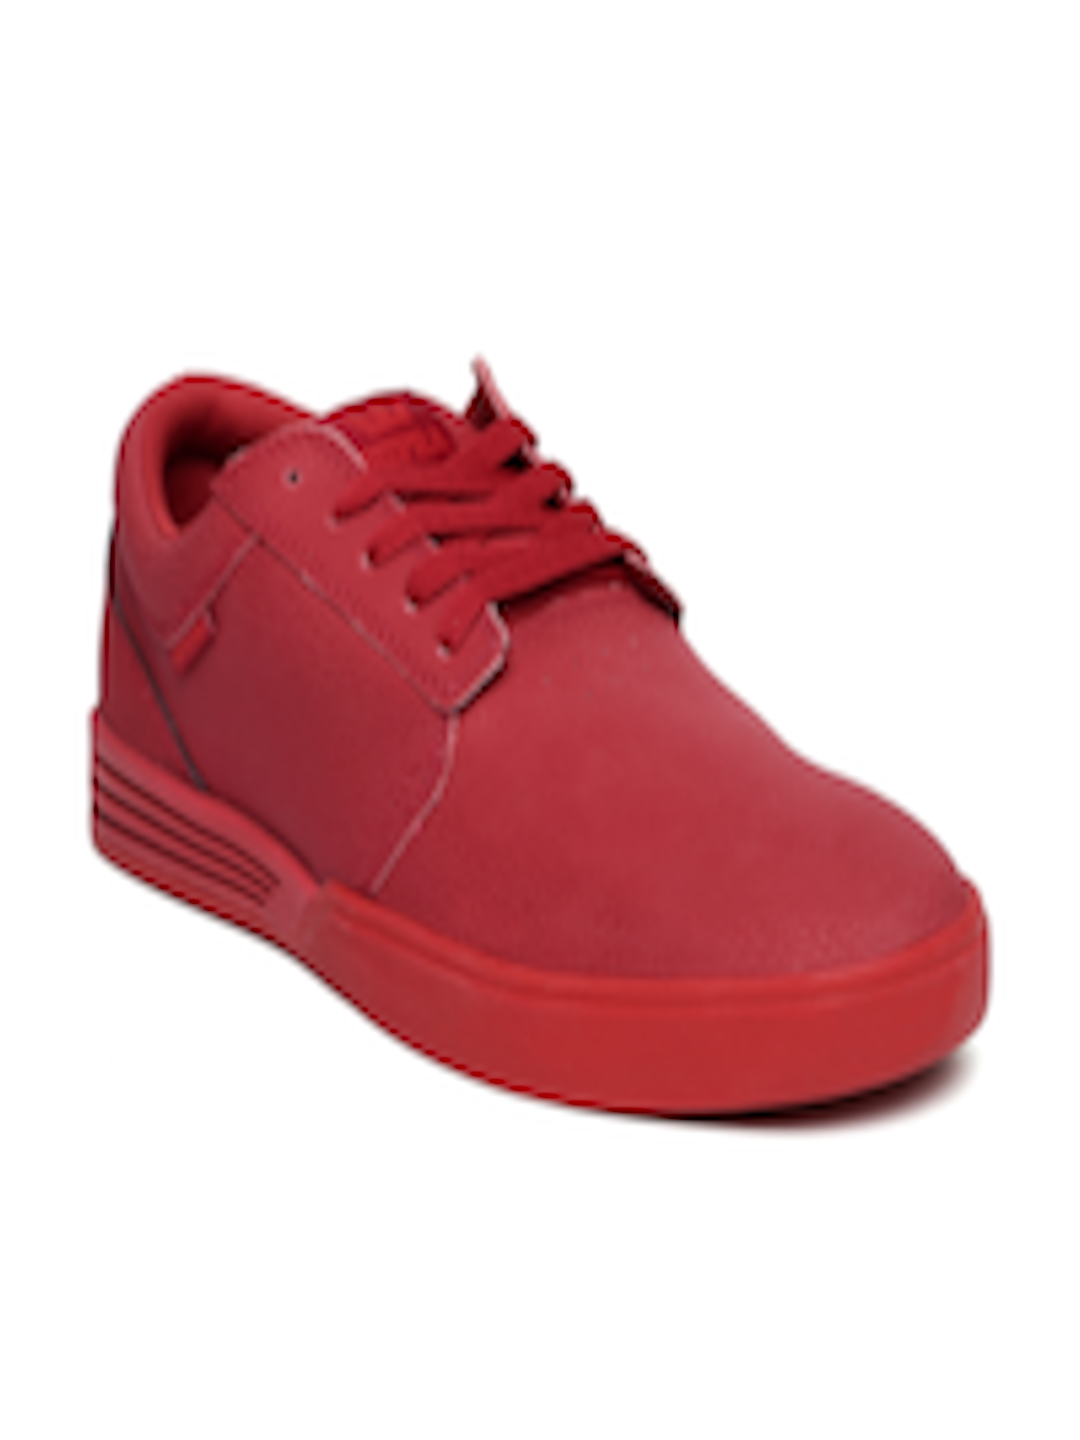 Supra Mens Hammer Red Red Skate Shoes wGTGc